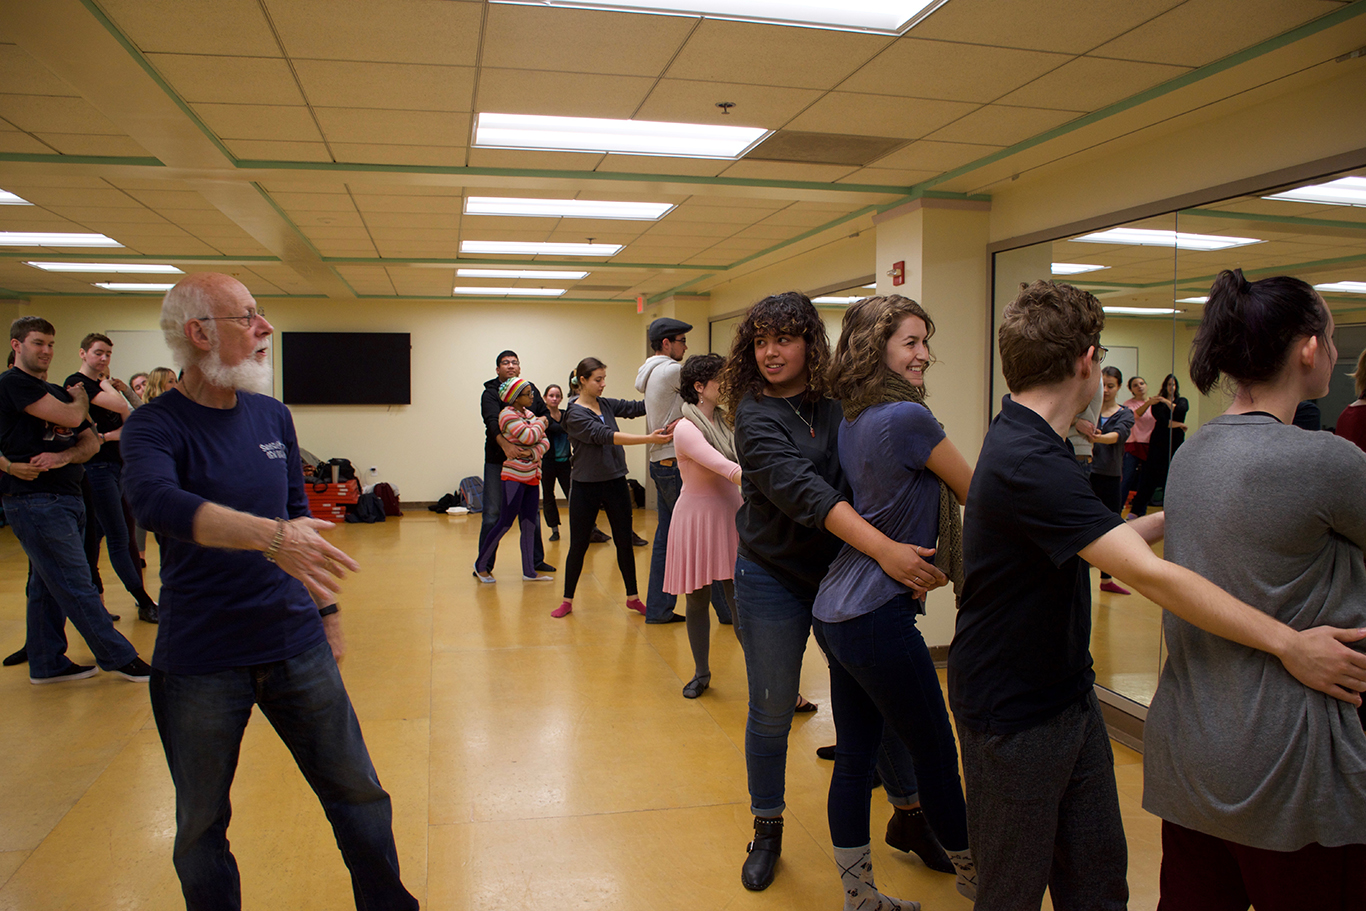 Professor shows students correct body placement during swing dance class in a dance studio.